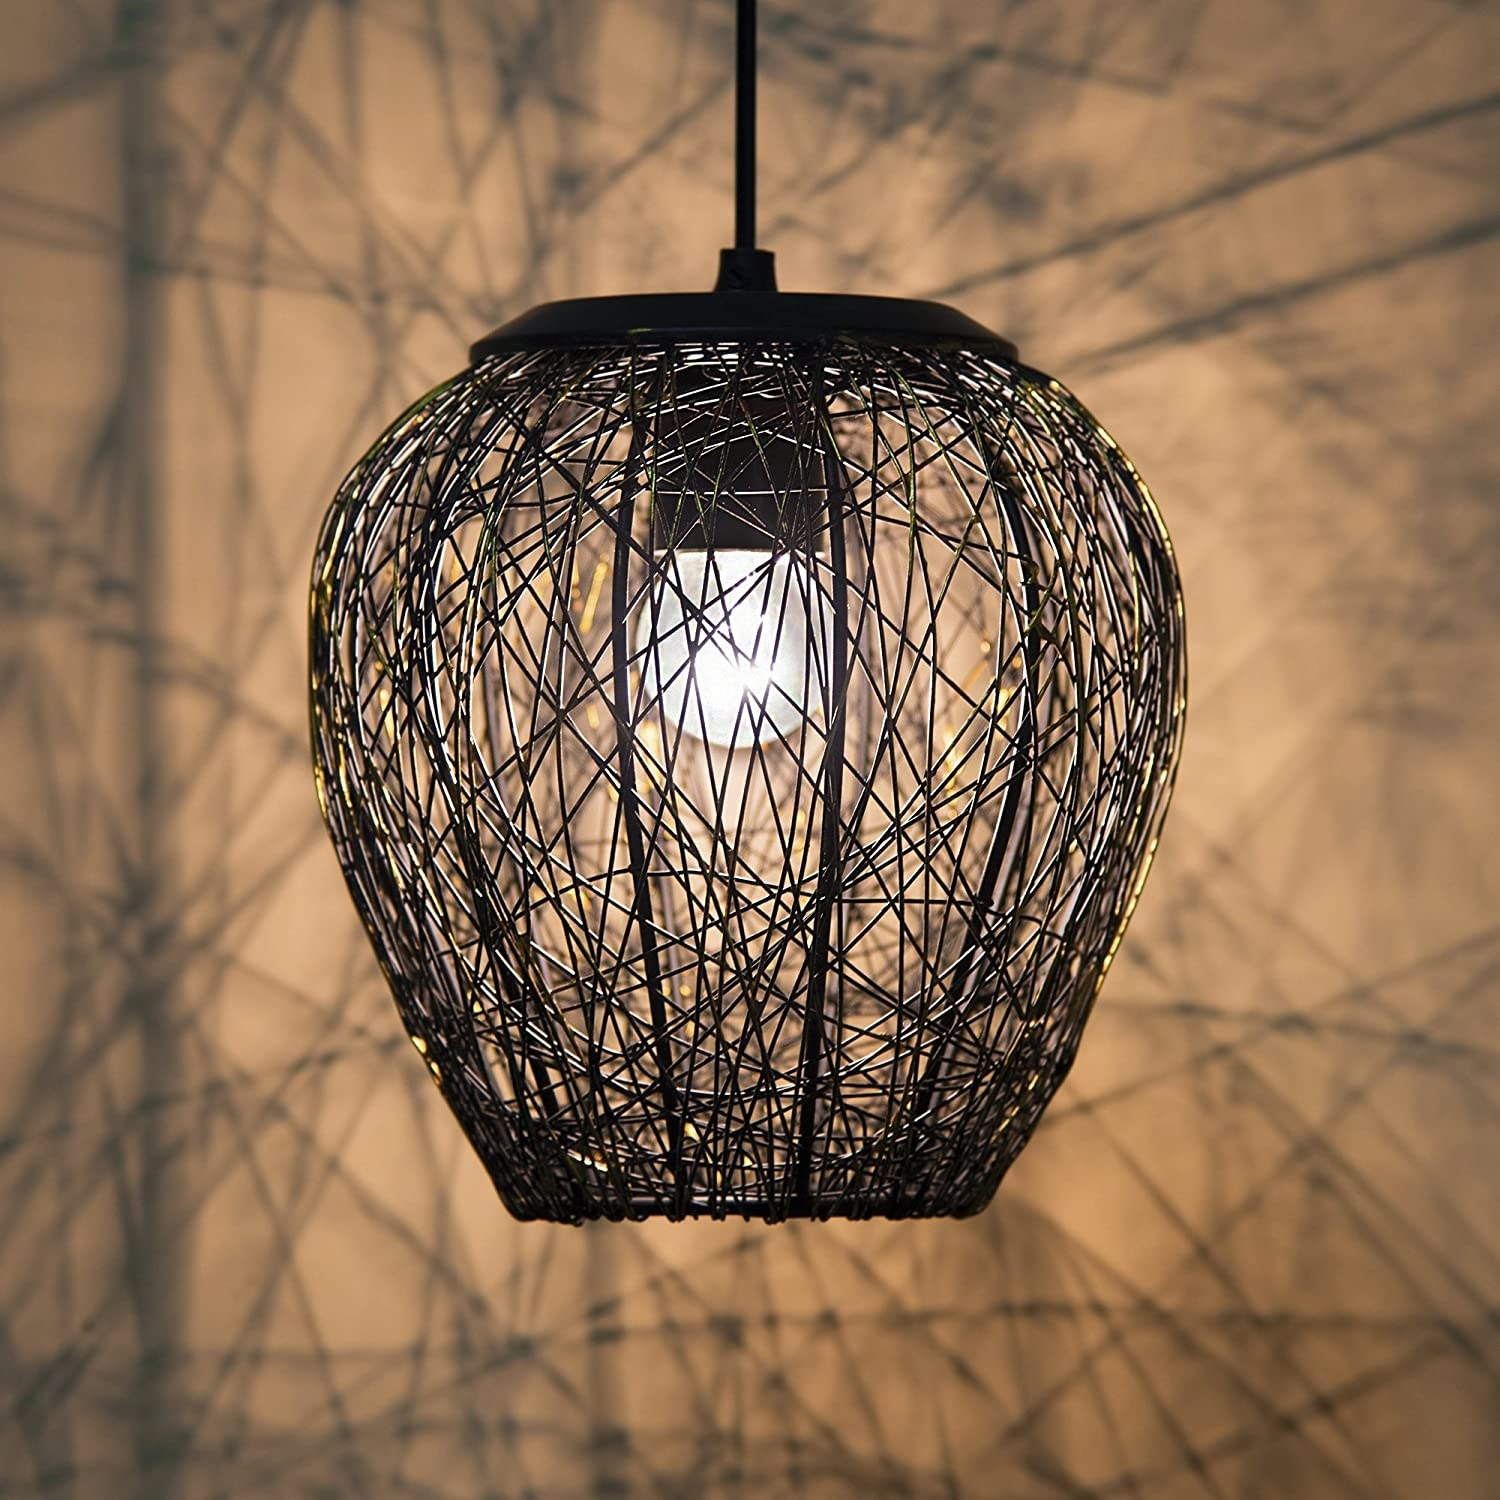 A lit up mesh chandelier throwing patterns on the wall behind it.